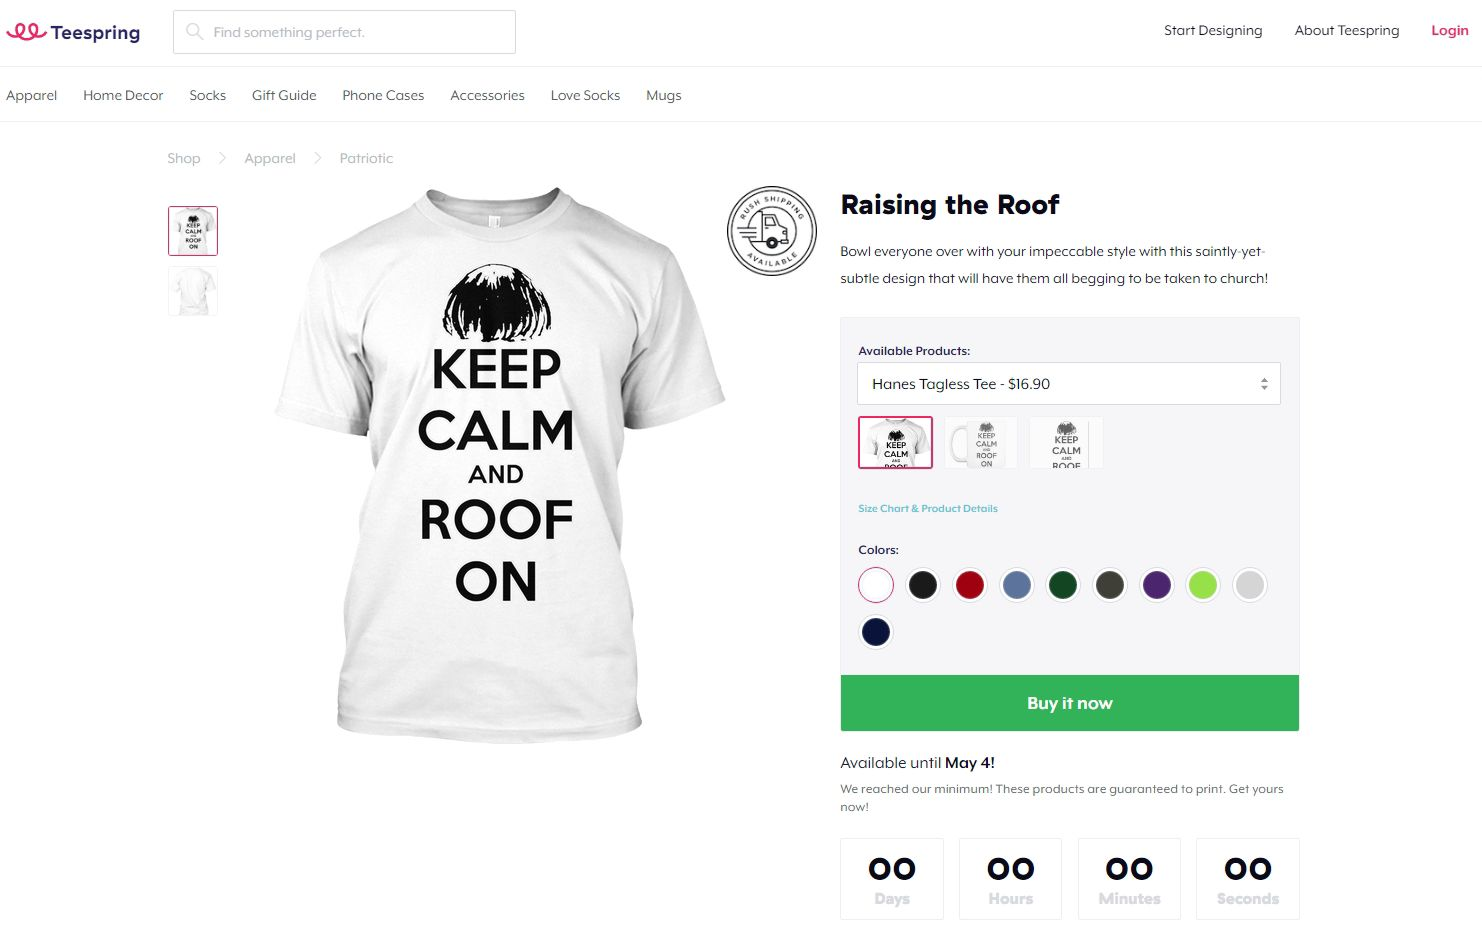 San Francisco-based Teespring says it didn't mean to sell